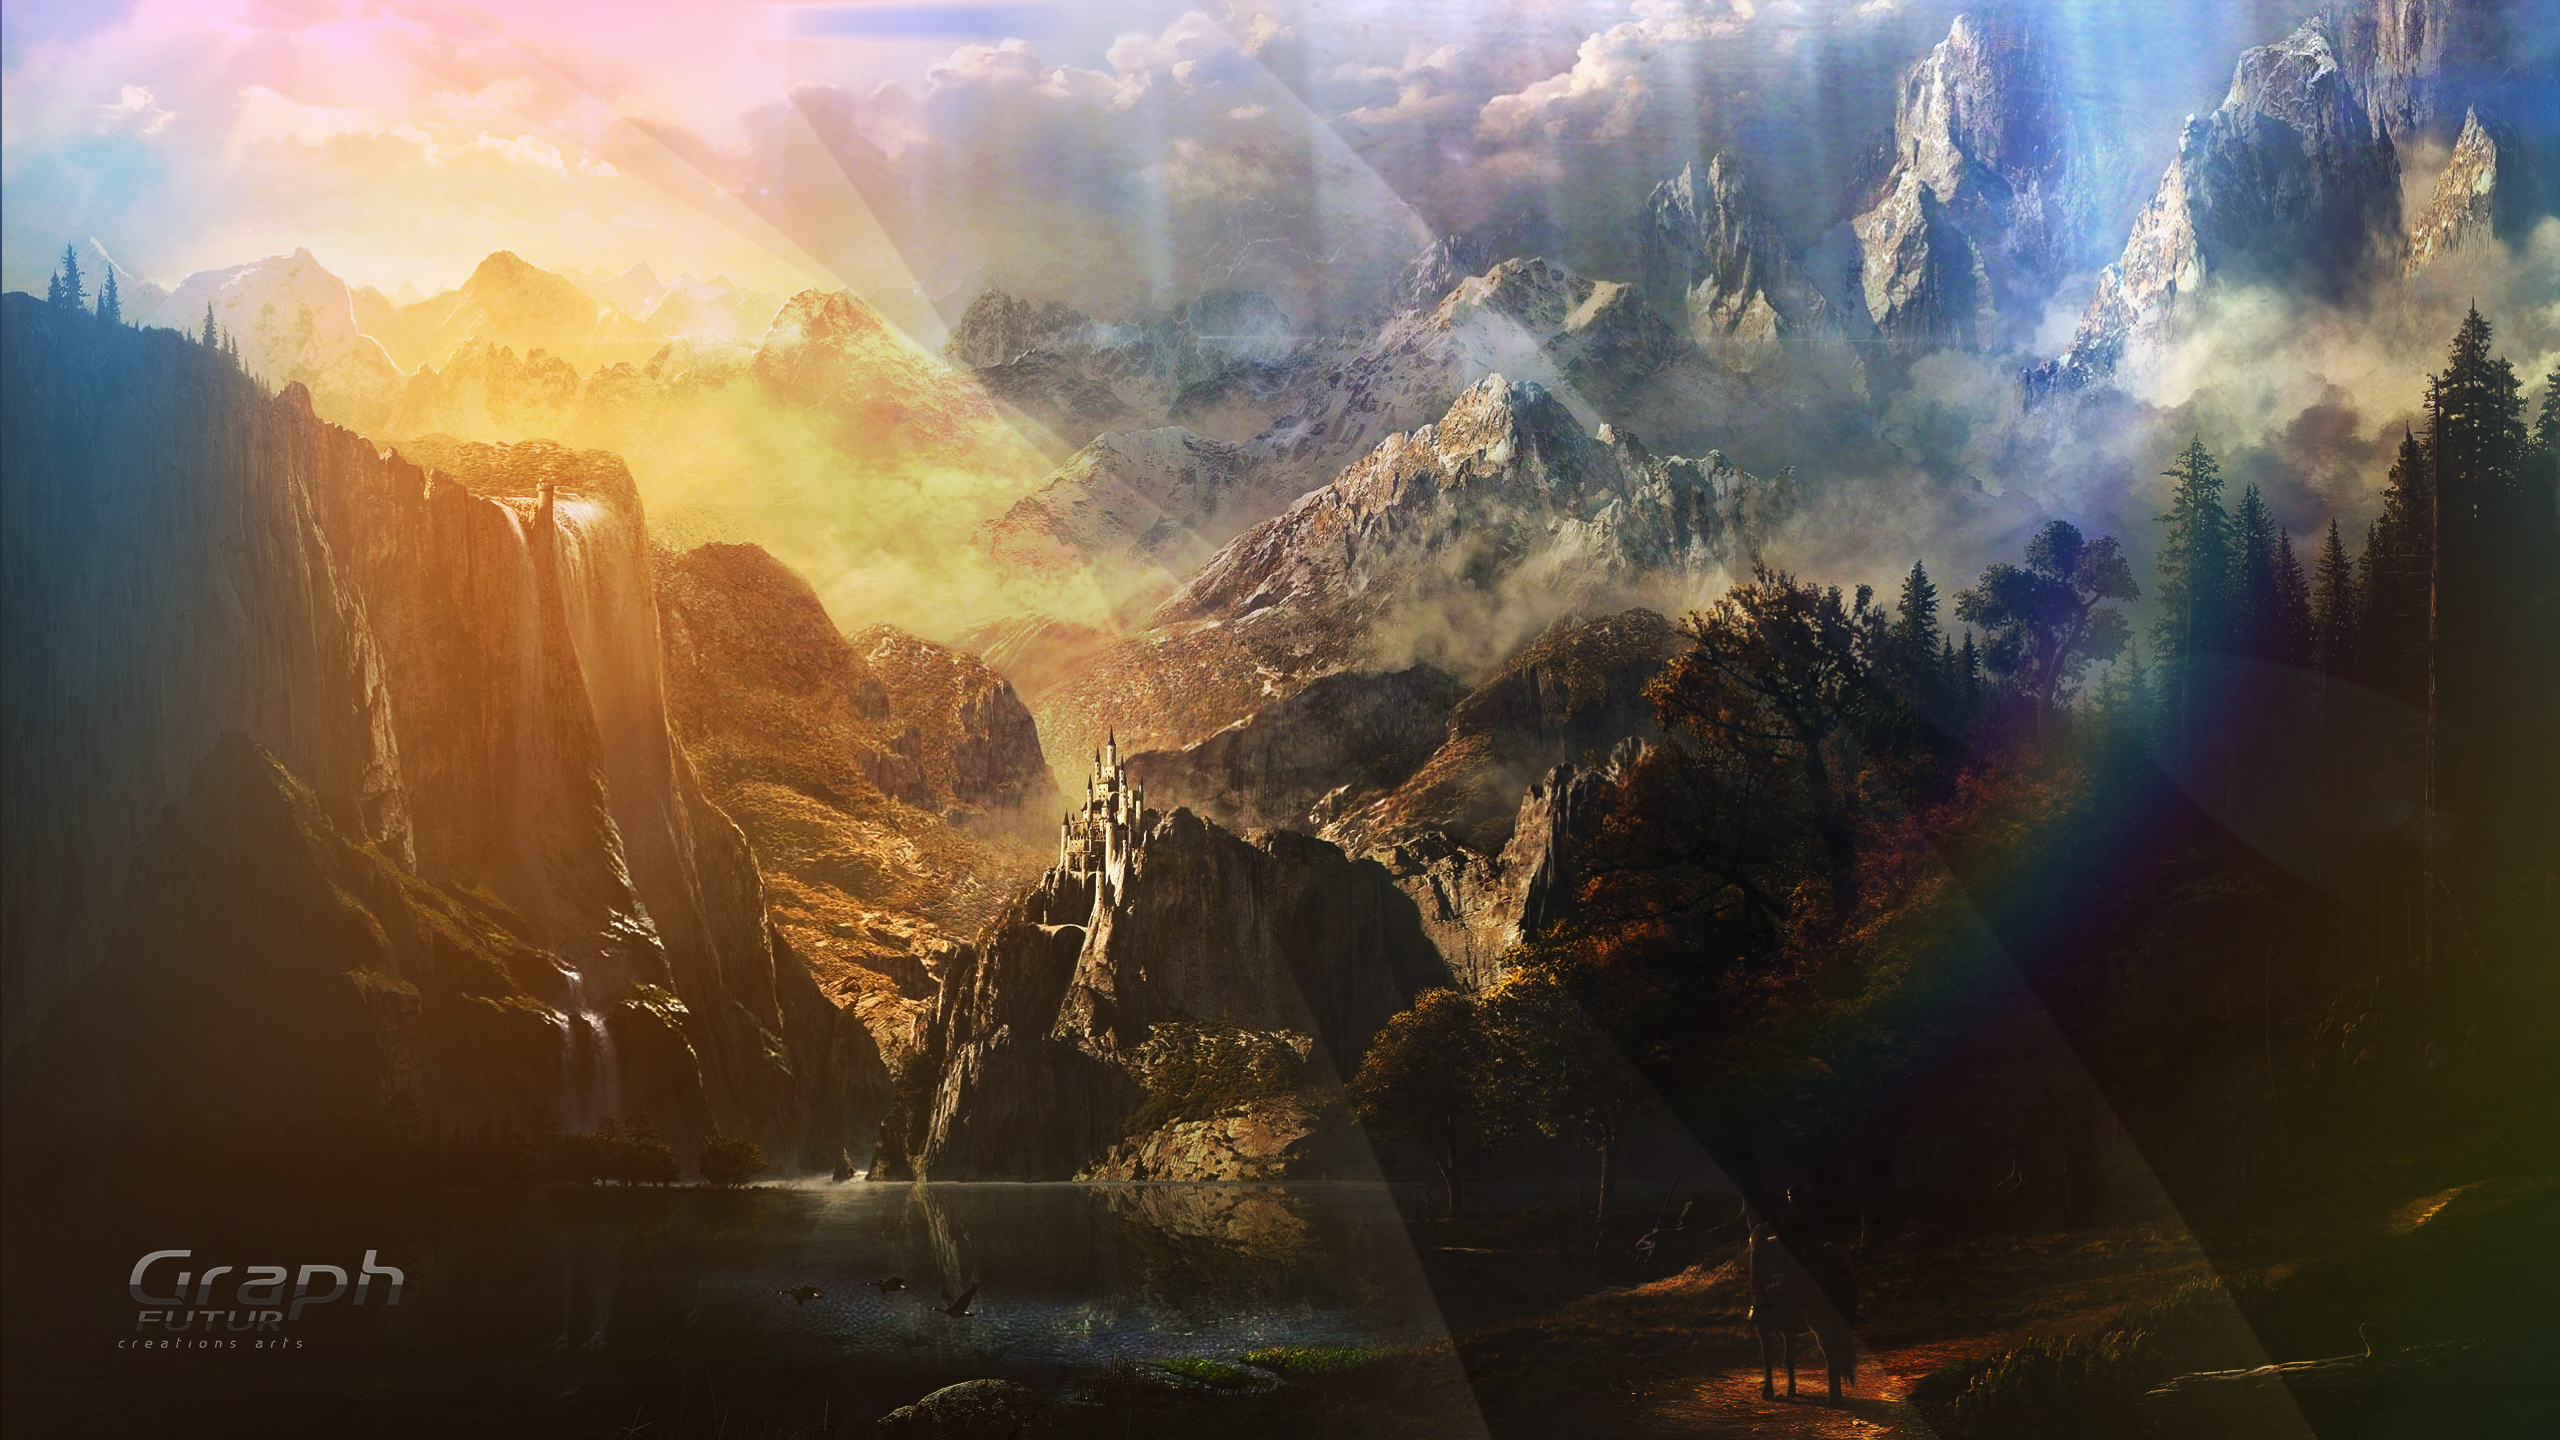 wallpaper fantasy landscape by graphfutur on deviantart